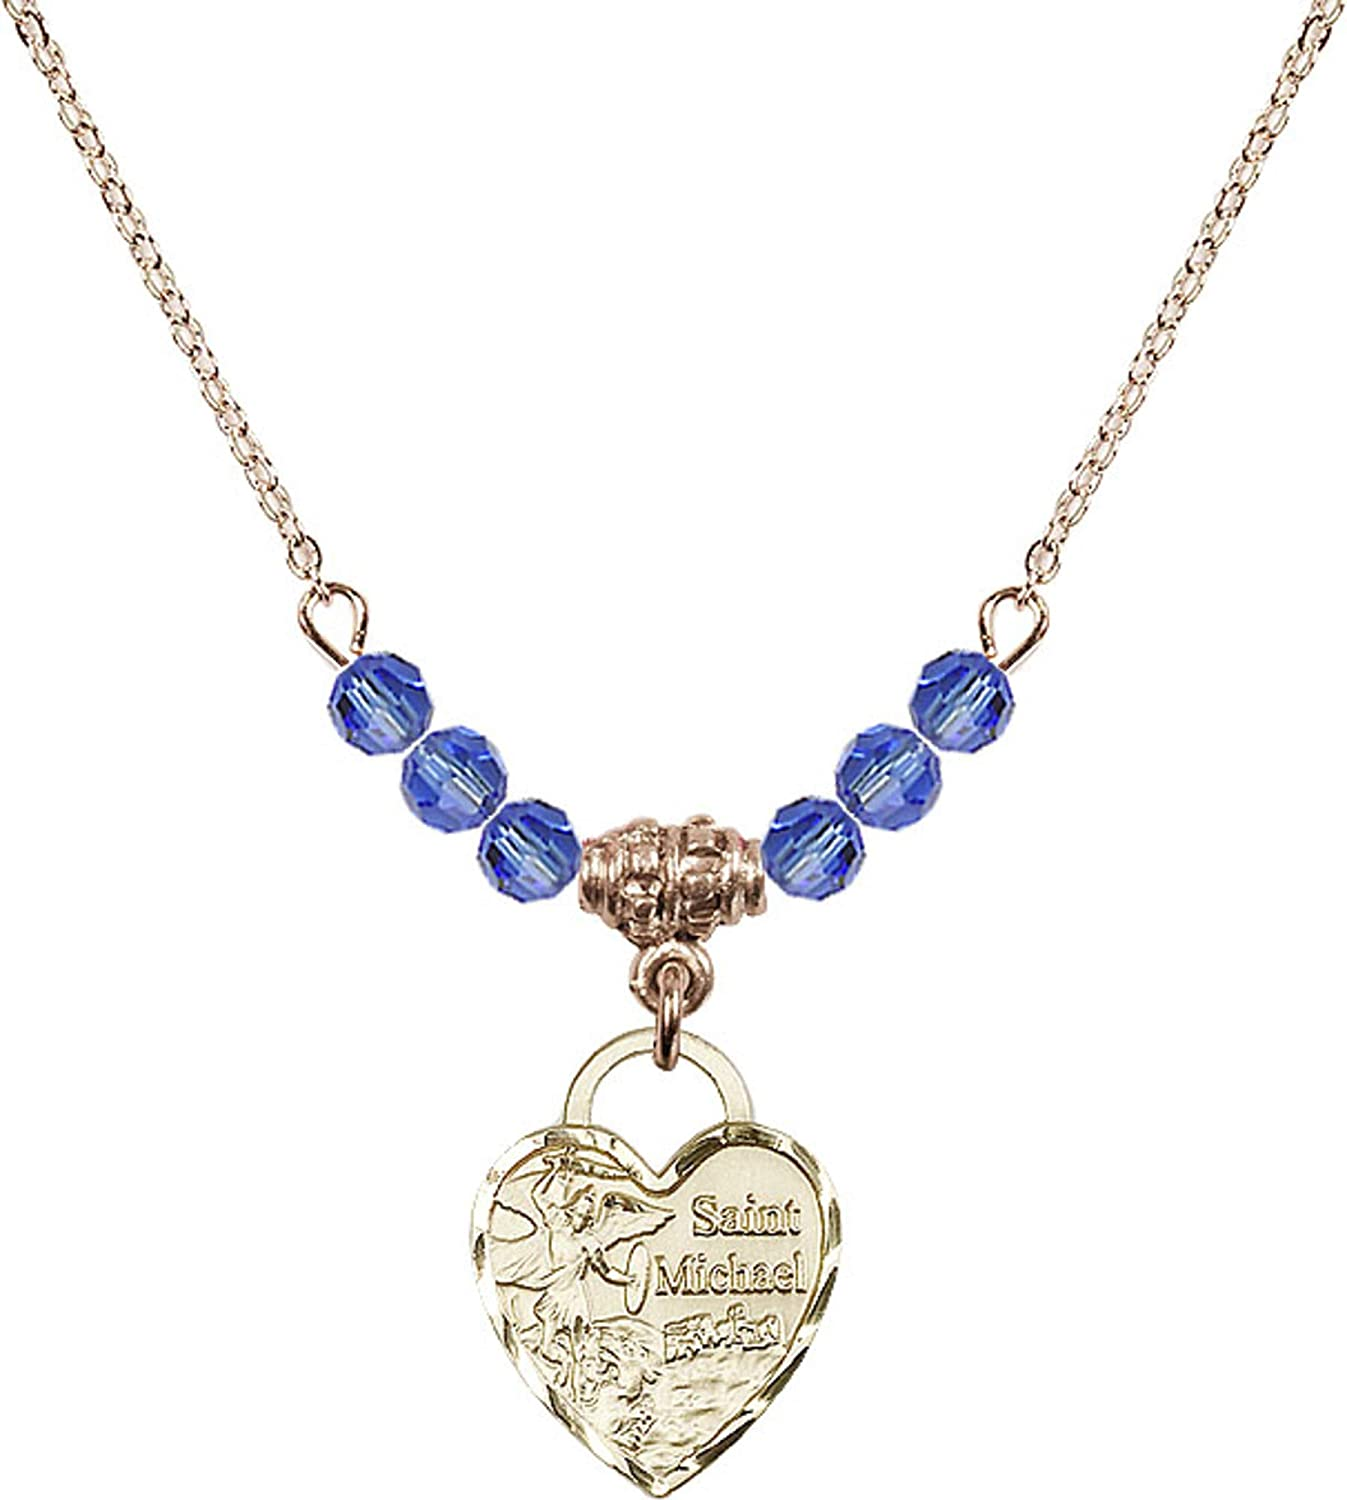 Bonyak Jewelry 18 Inch Hamilton Gold Plated Necklace w// 4mm Blue September Birth Month Stone Beads and Saint Michael Heart Charm